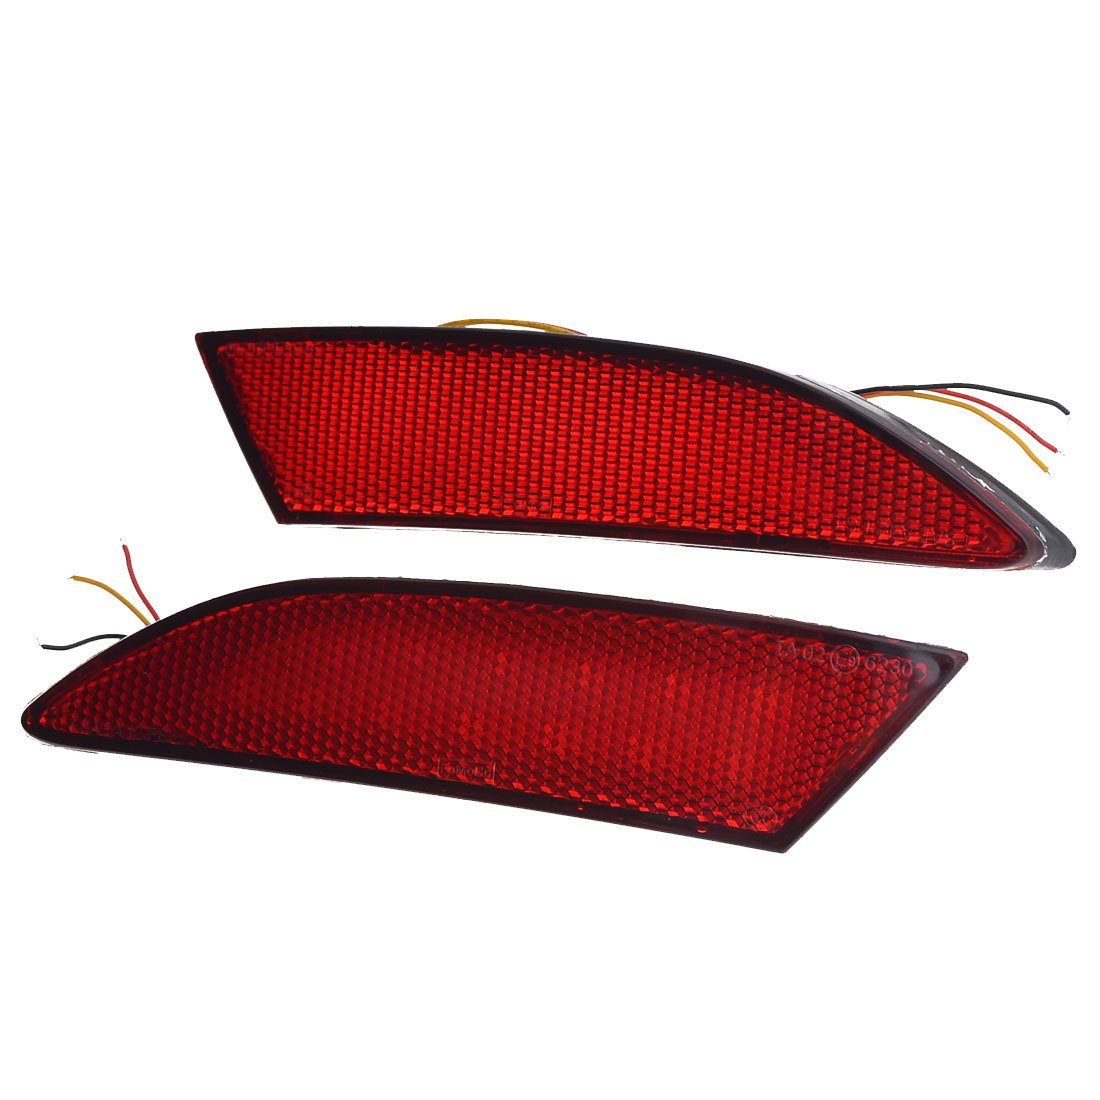 2PCS Car Plastic Rear Bumper Red Reflector LED Brake Light for Ford Focus 2012